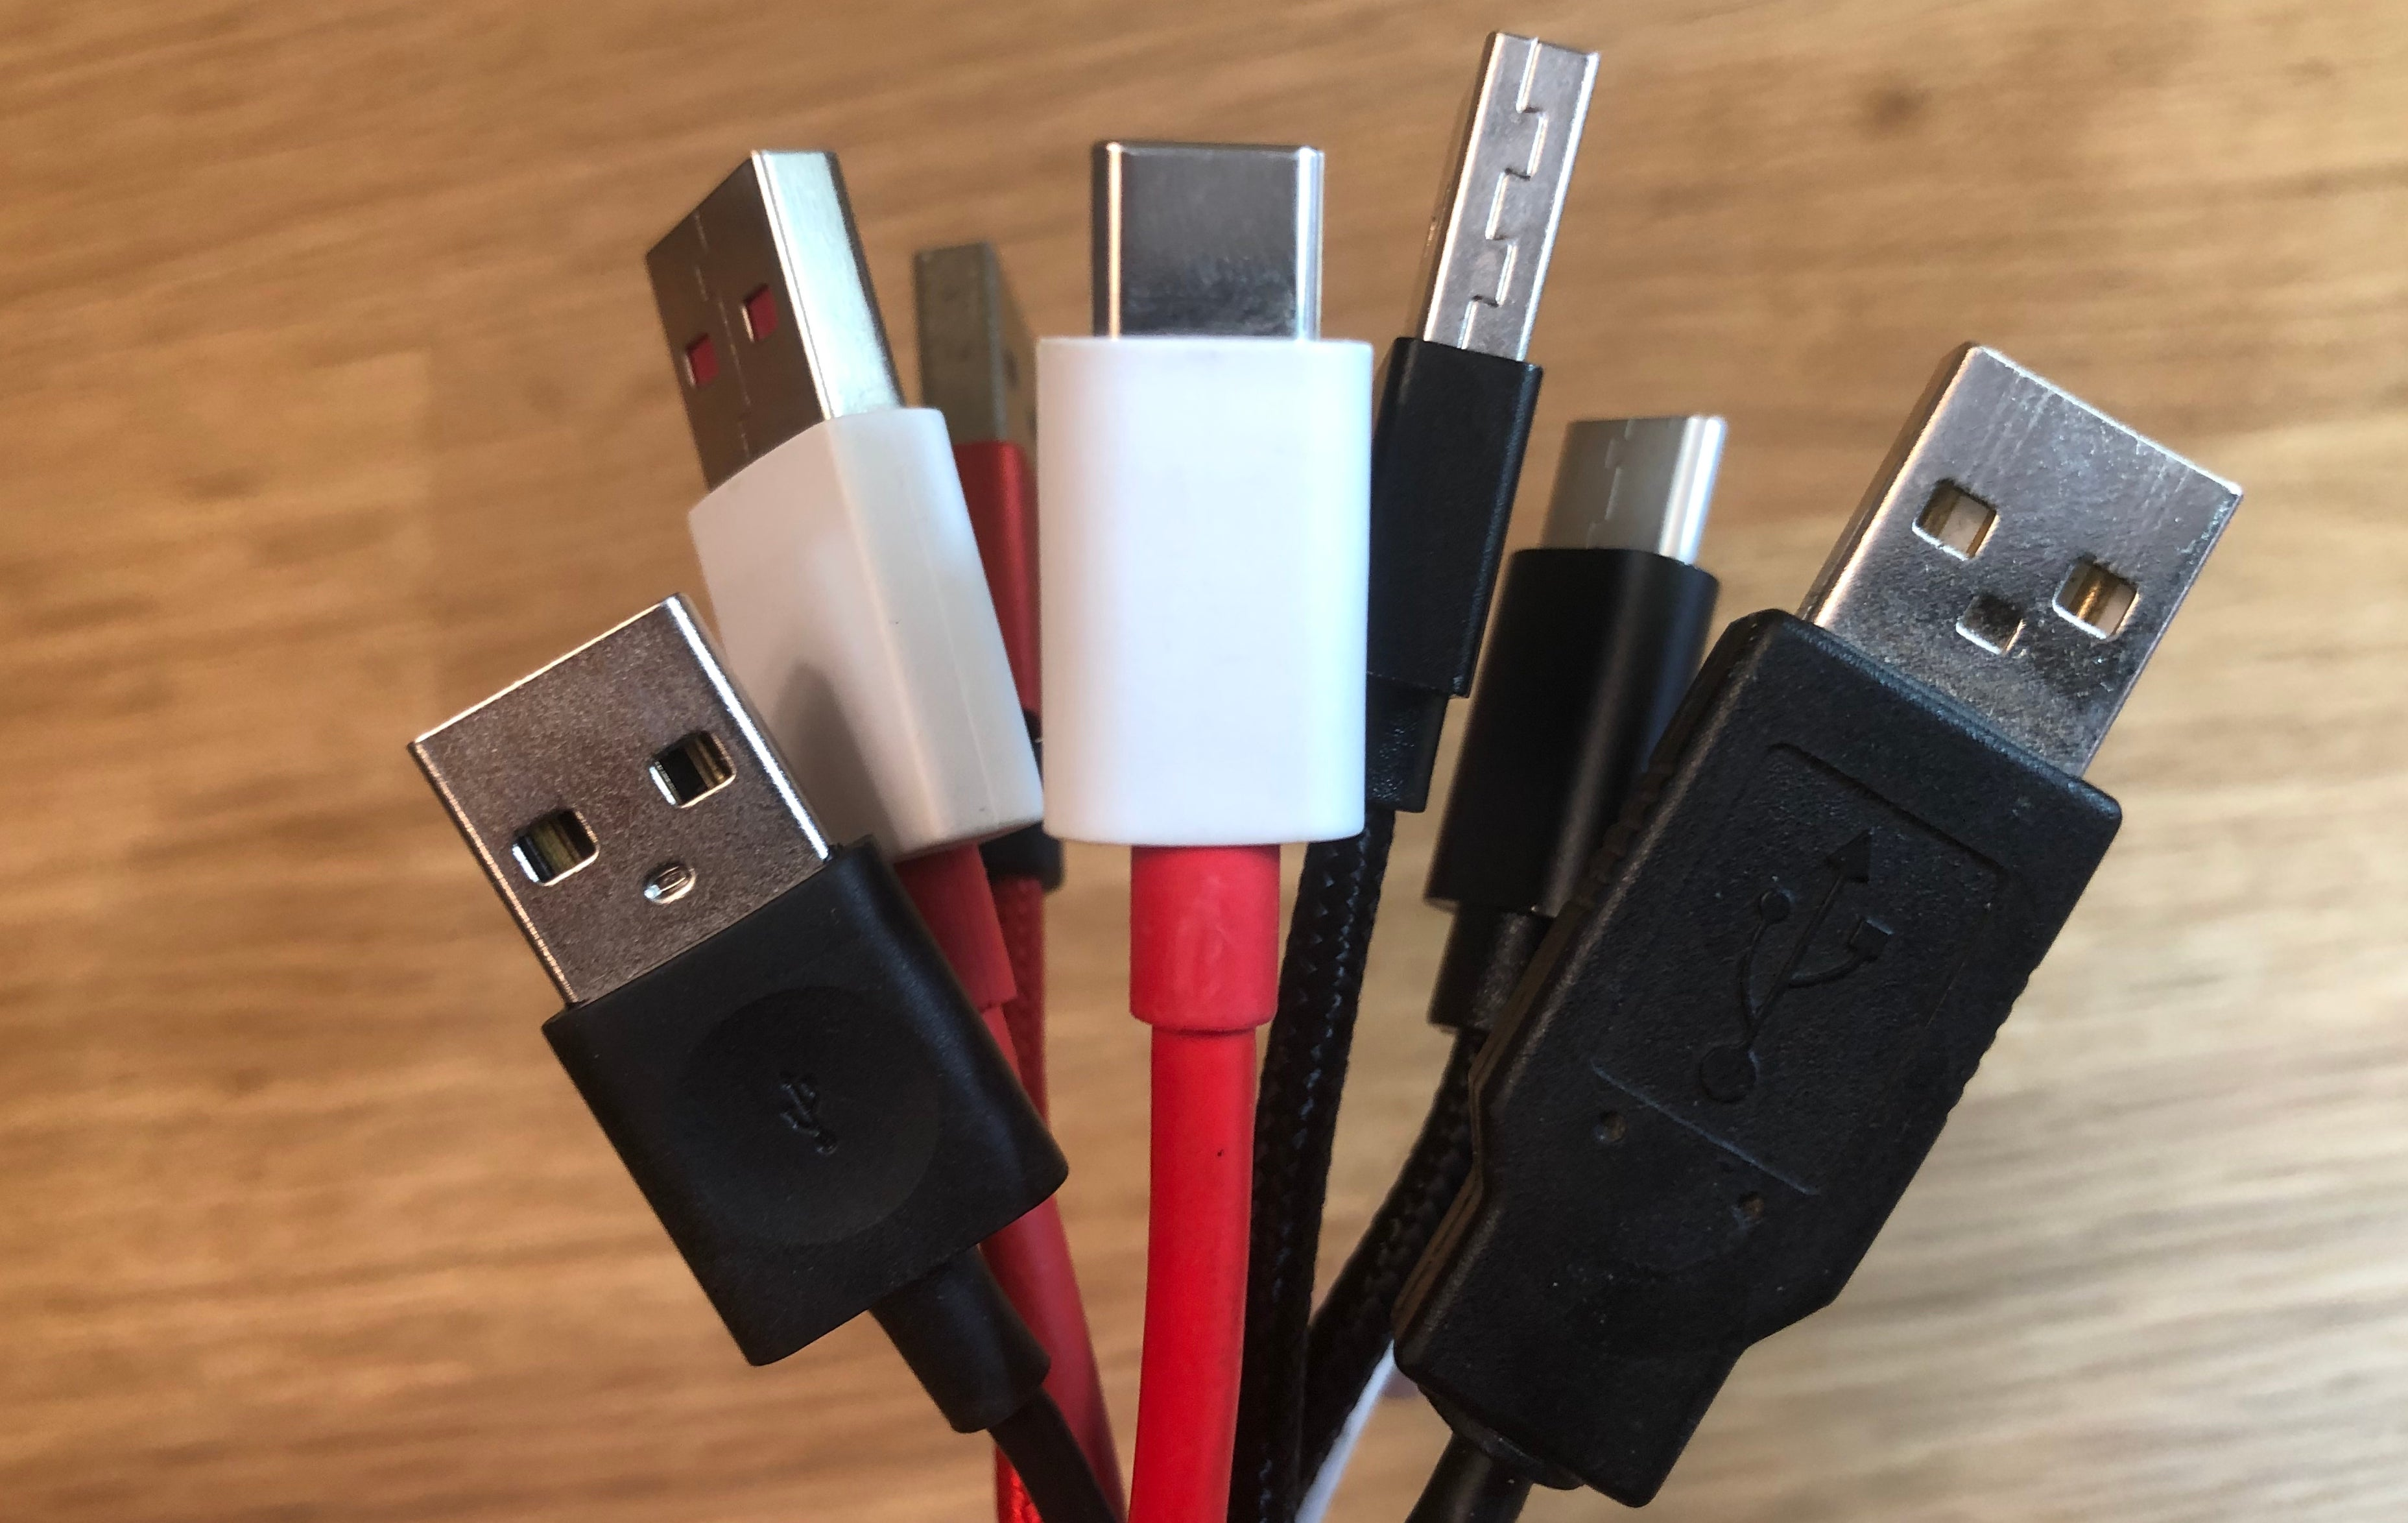 Don't Get Fooled By 'USB 3.2' Marketing Later This Year